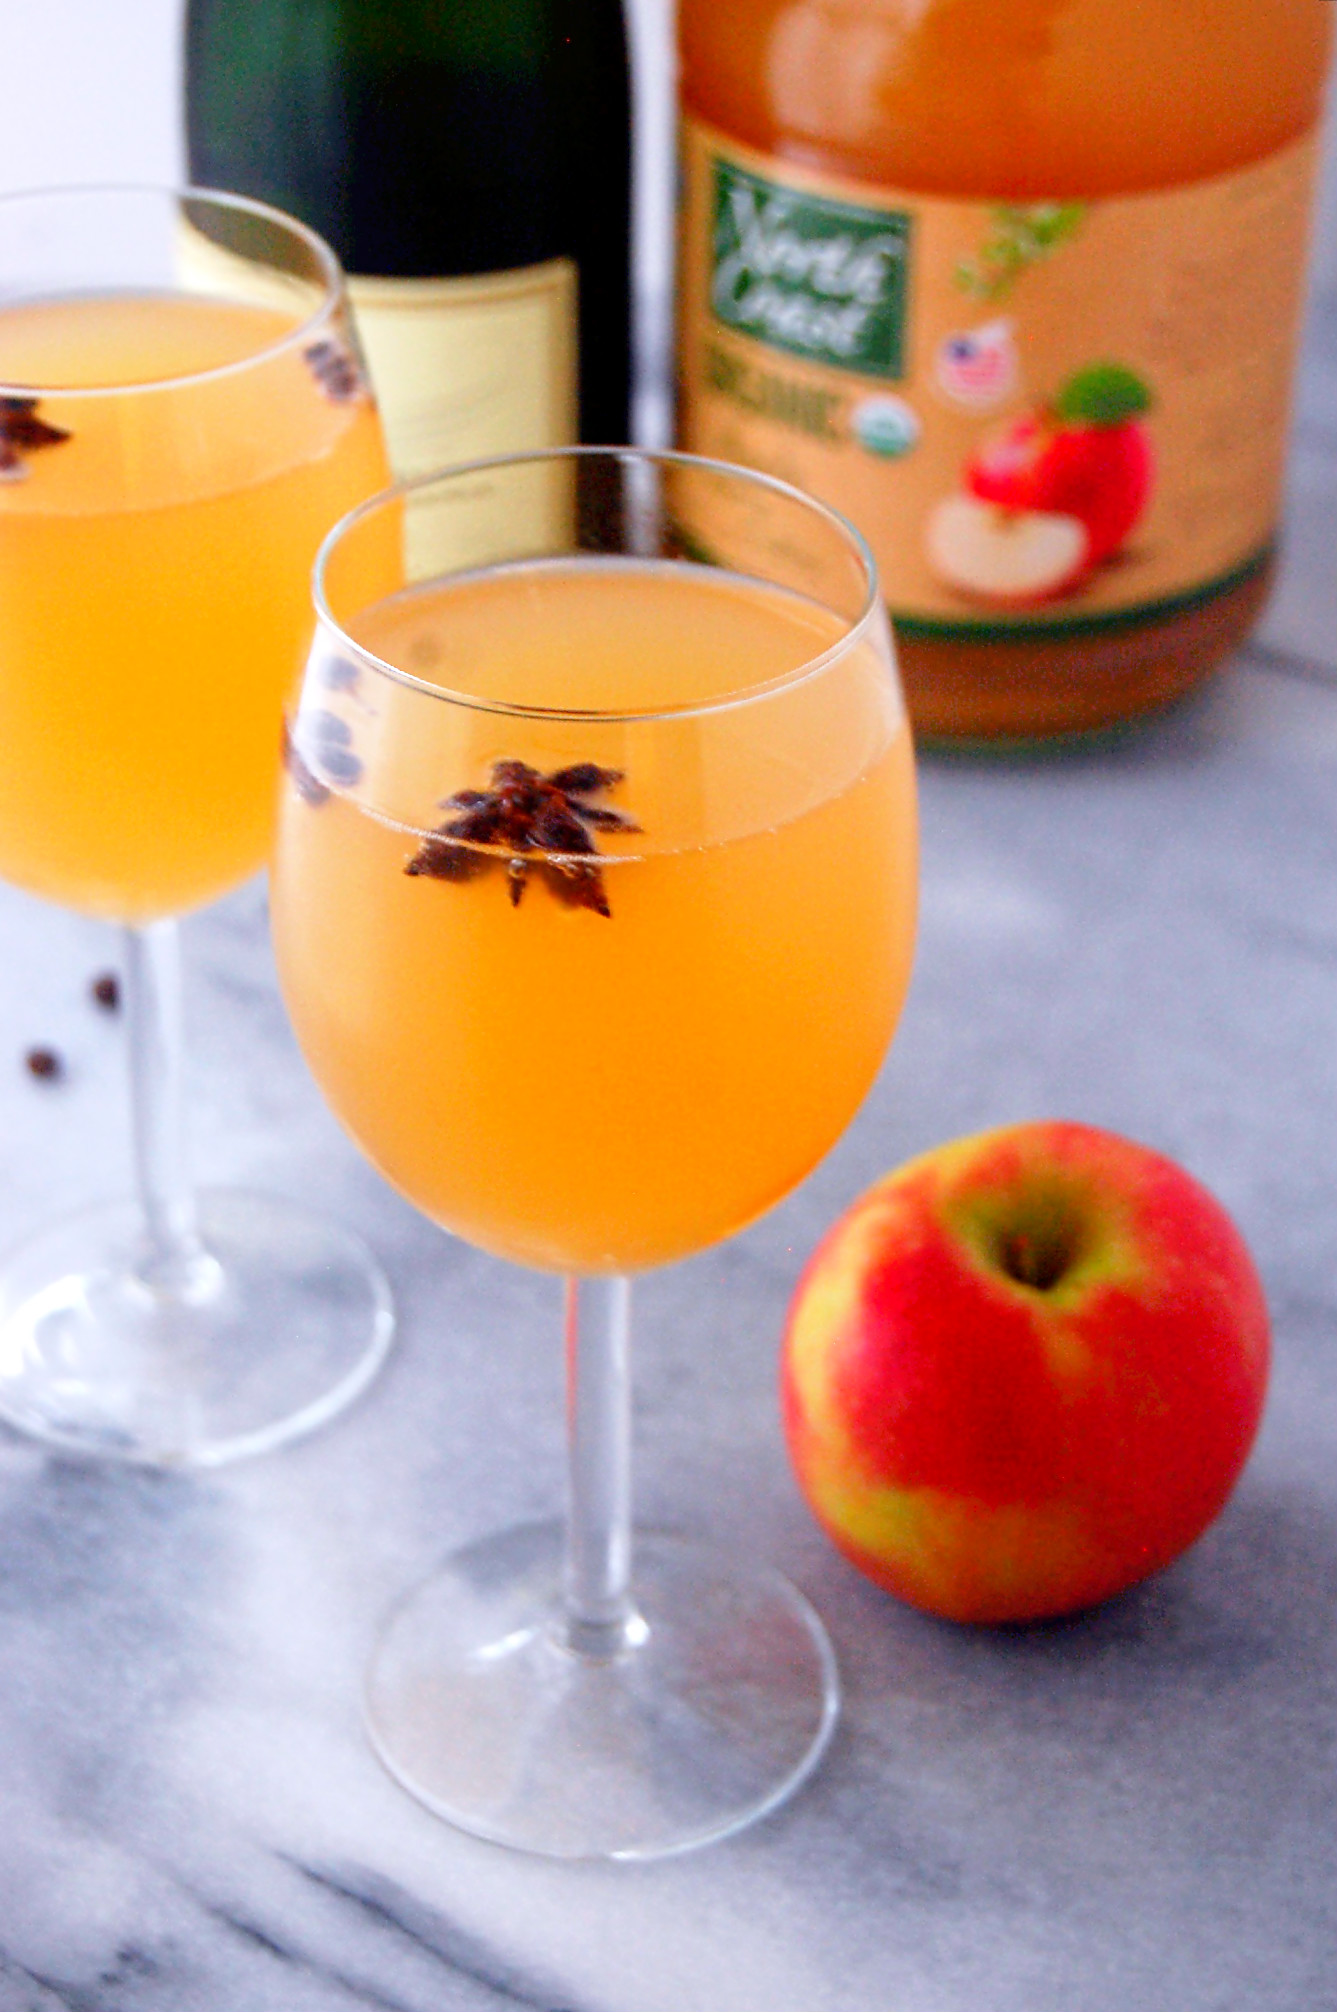 Spiced apple cider mimosa for Spiced cranberry sauce with orange and star anise